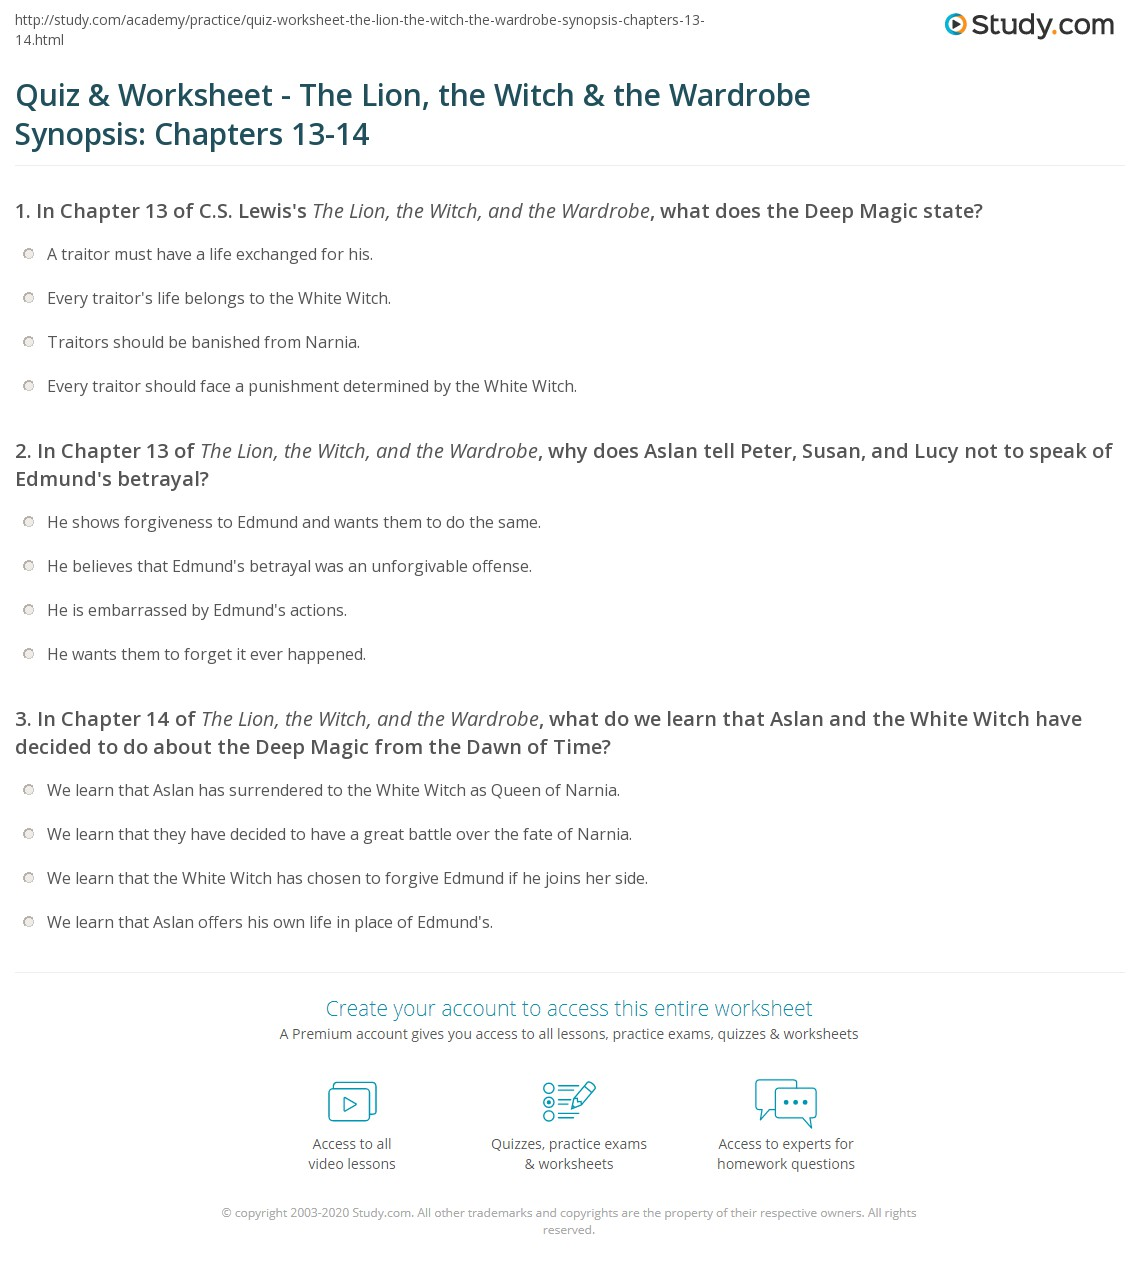 Quiz Worksheet The Lion The Witch The Wardrobe Synopsis